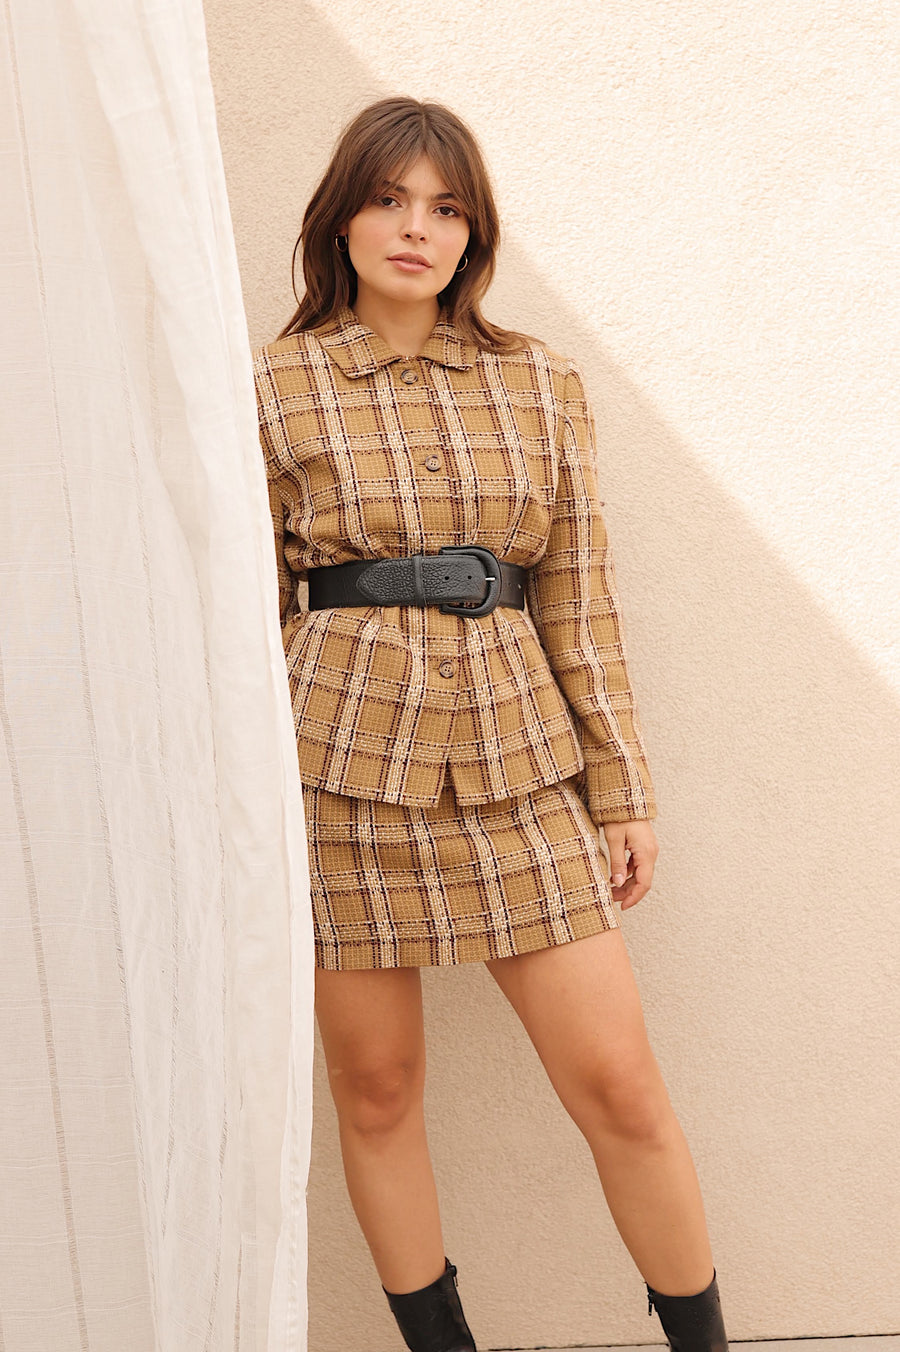 Vintage Green Plaid Mini Skirt/Jacket Set 30